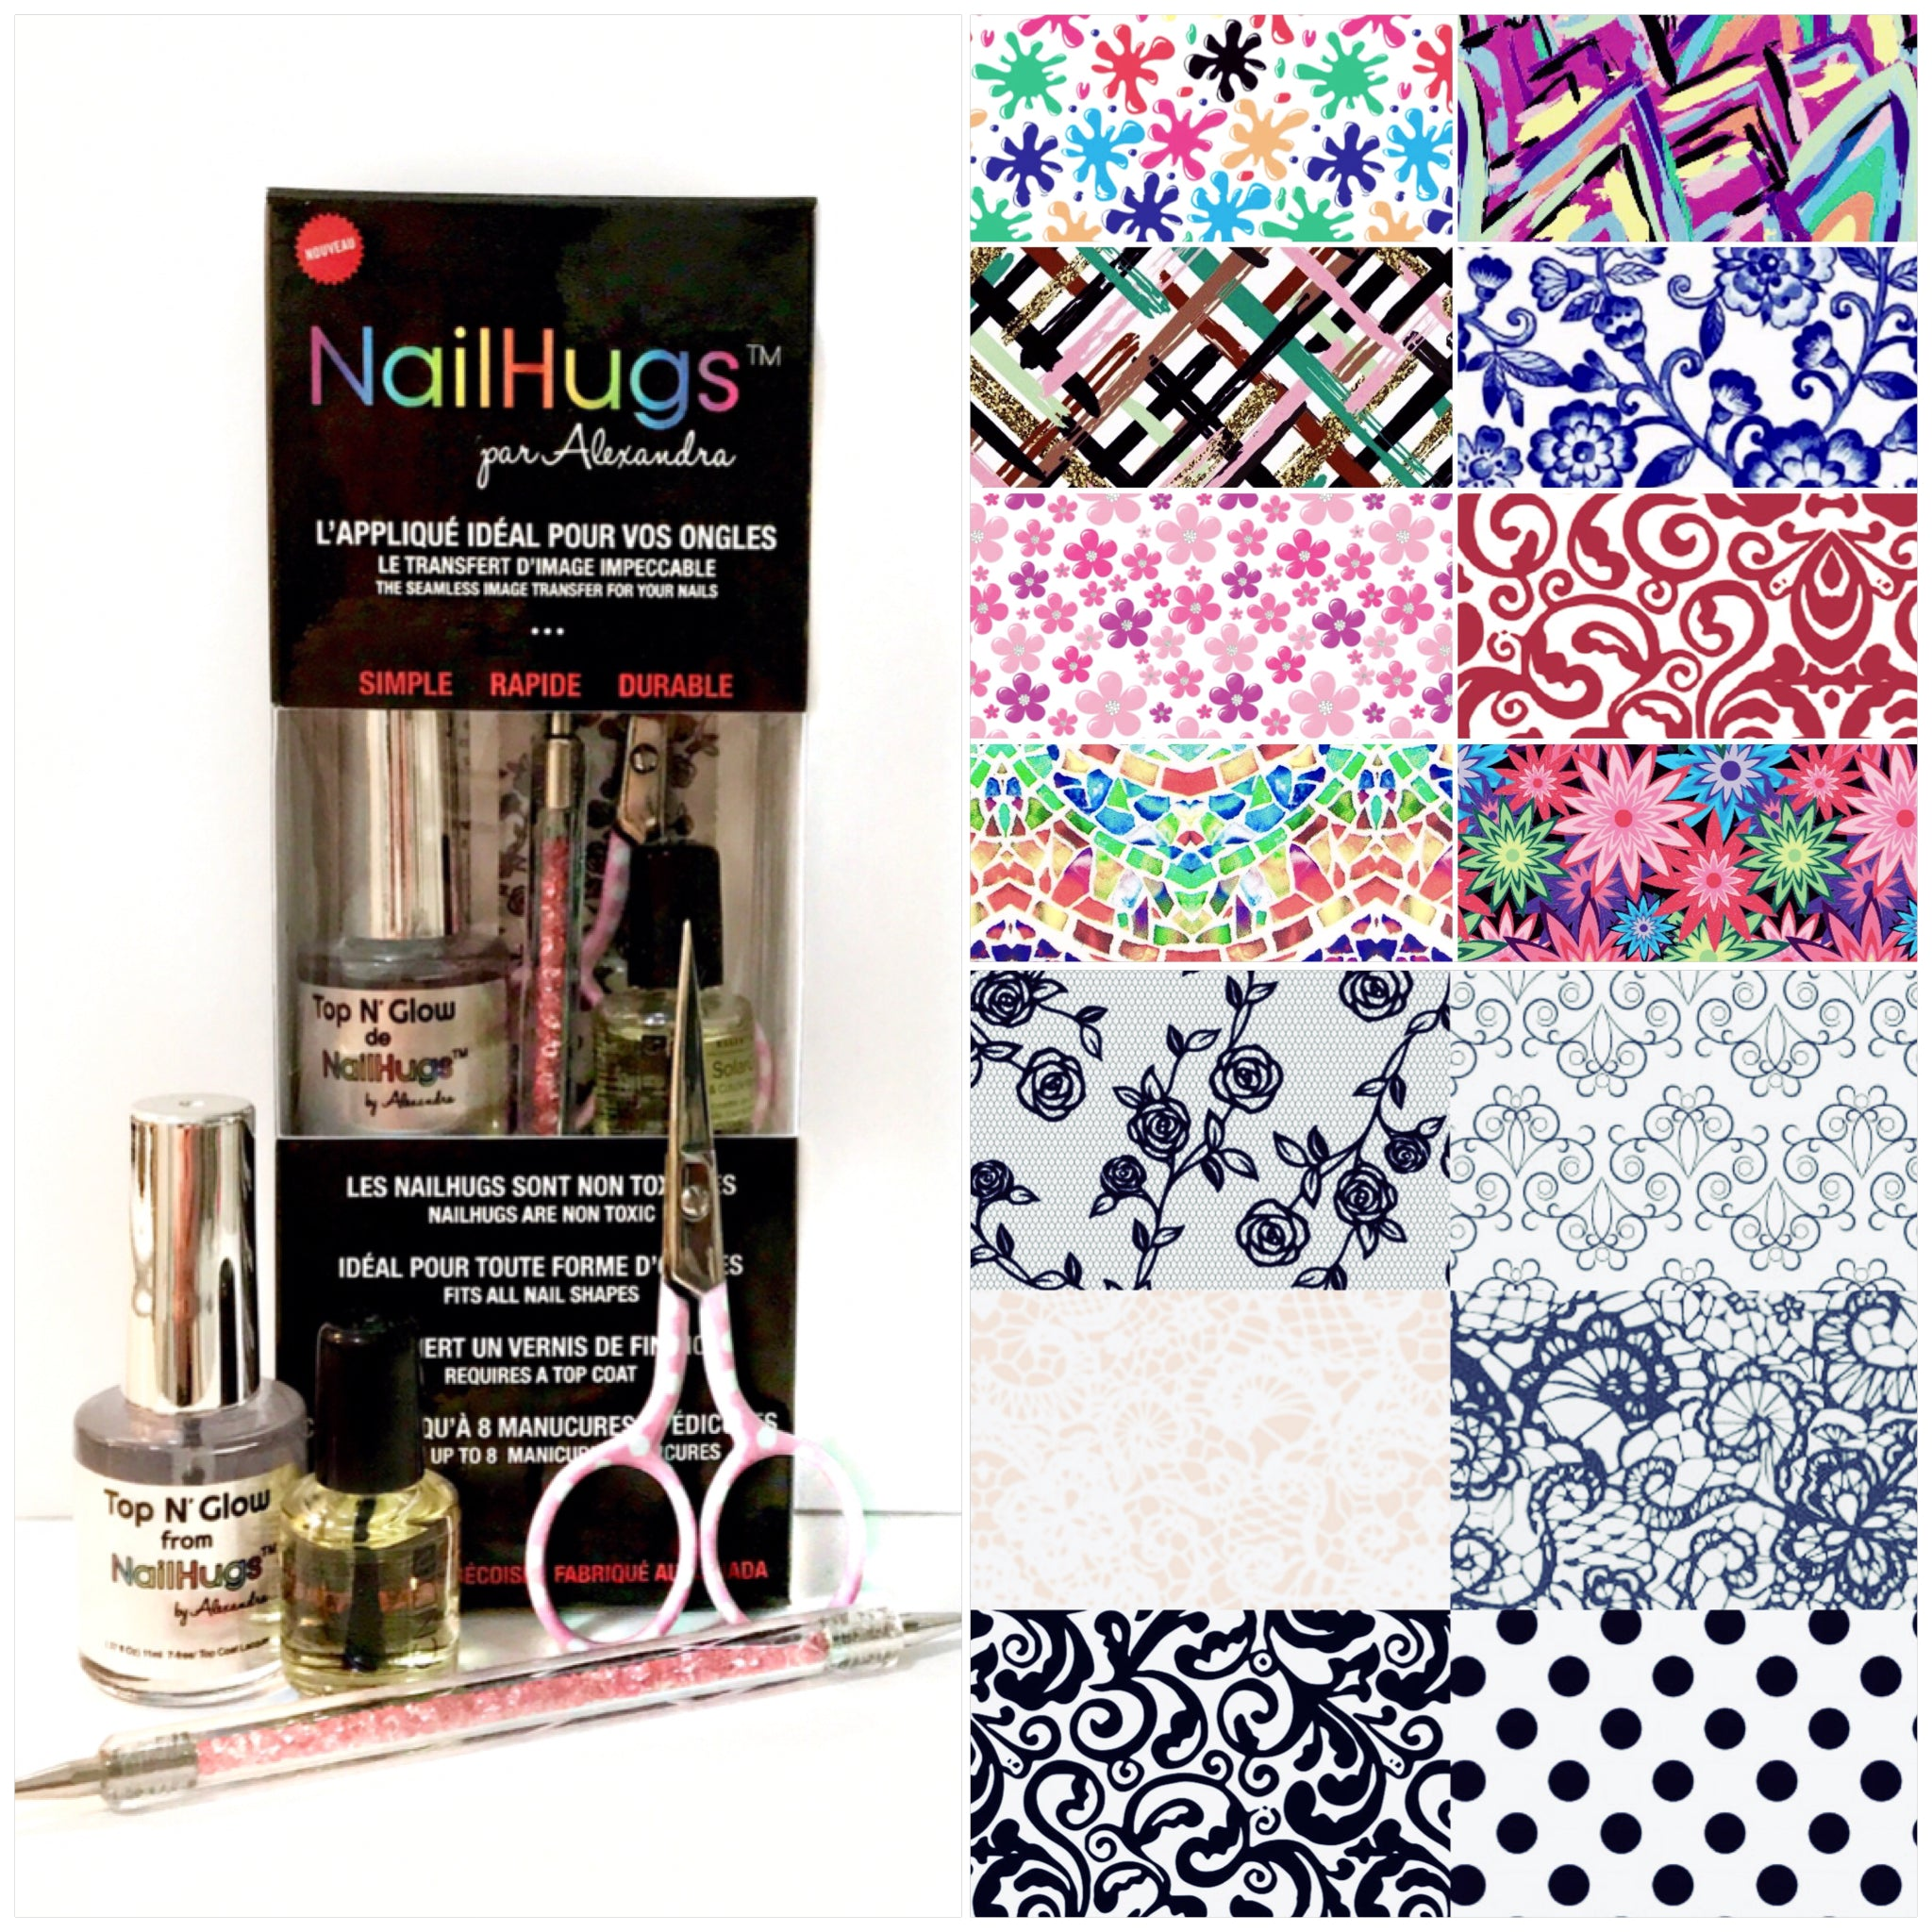 NailHugs designer kit